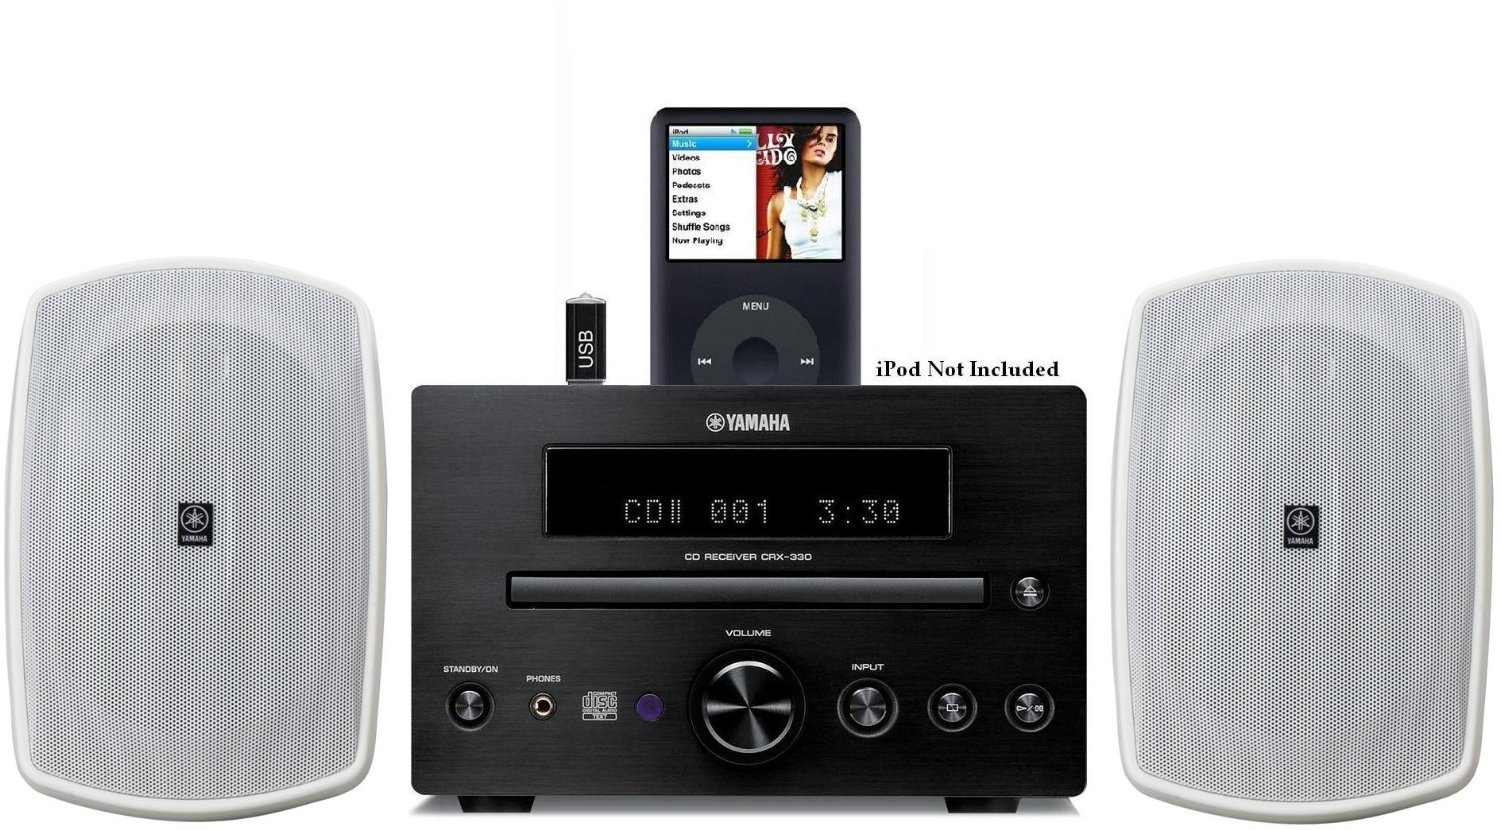 Yamaha Natural Sound Micro Home Theater Receiver Sound System with Integrated iPod Docking Station, High Quality CD Player, USB Port for Flash Drive & All Weather Indoor / Outdoor Speakers (Speakers are White) 50ft 16 AWG Speaker Wire Included